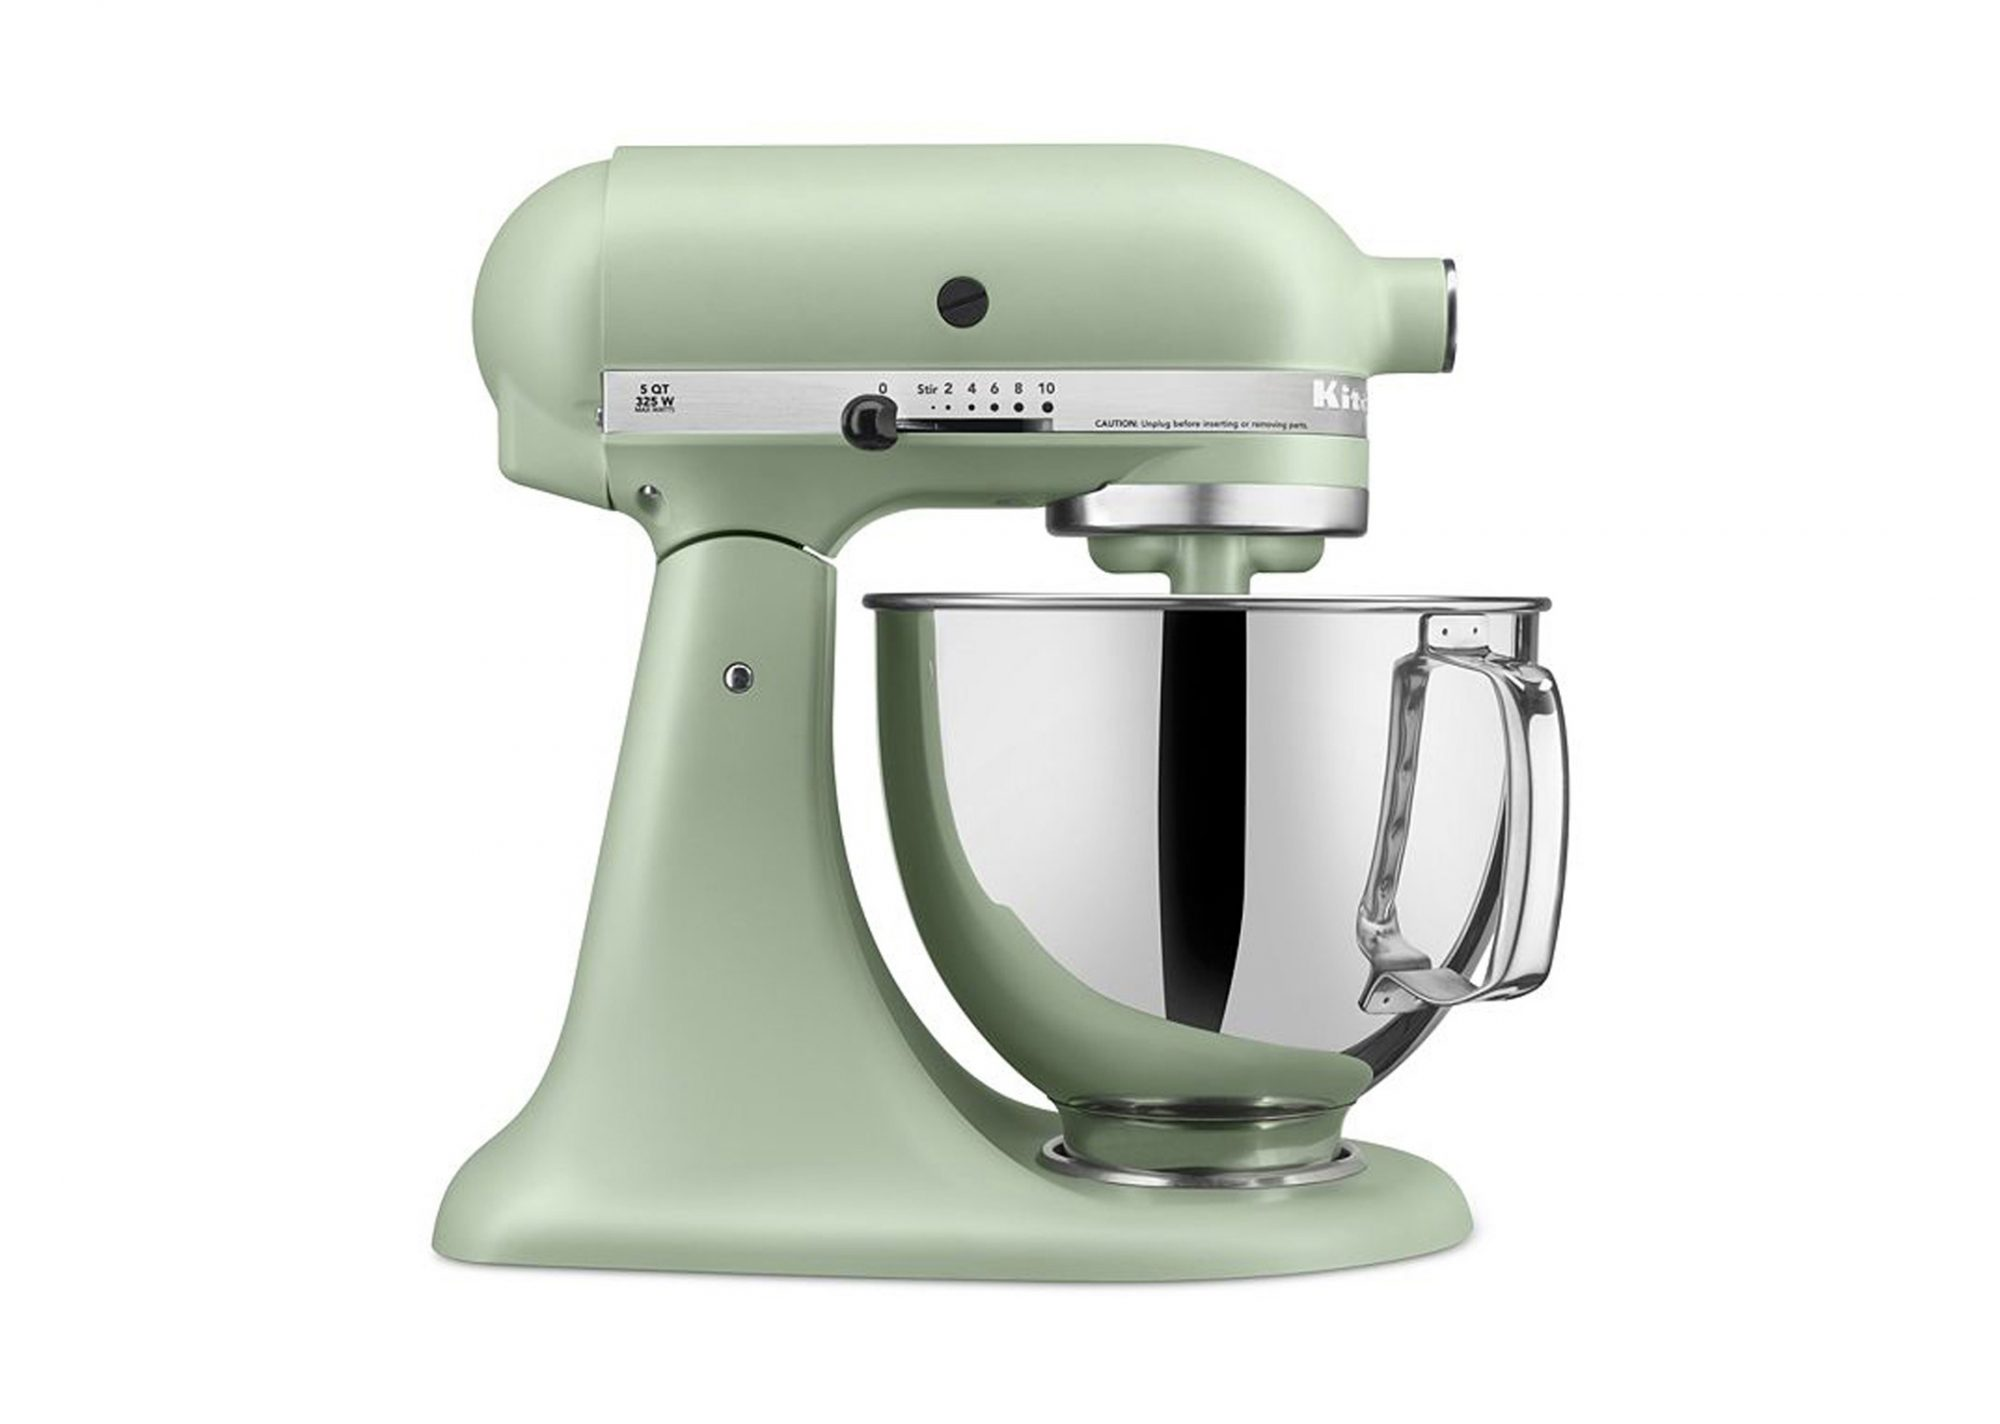 Kitchenaid S Special Edition Stand Mixer Has Major Vintage Vibes